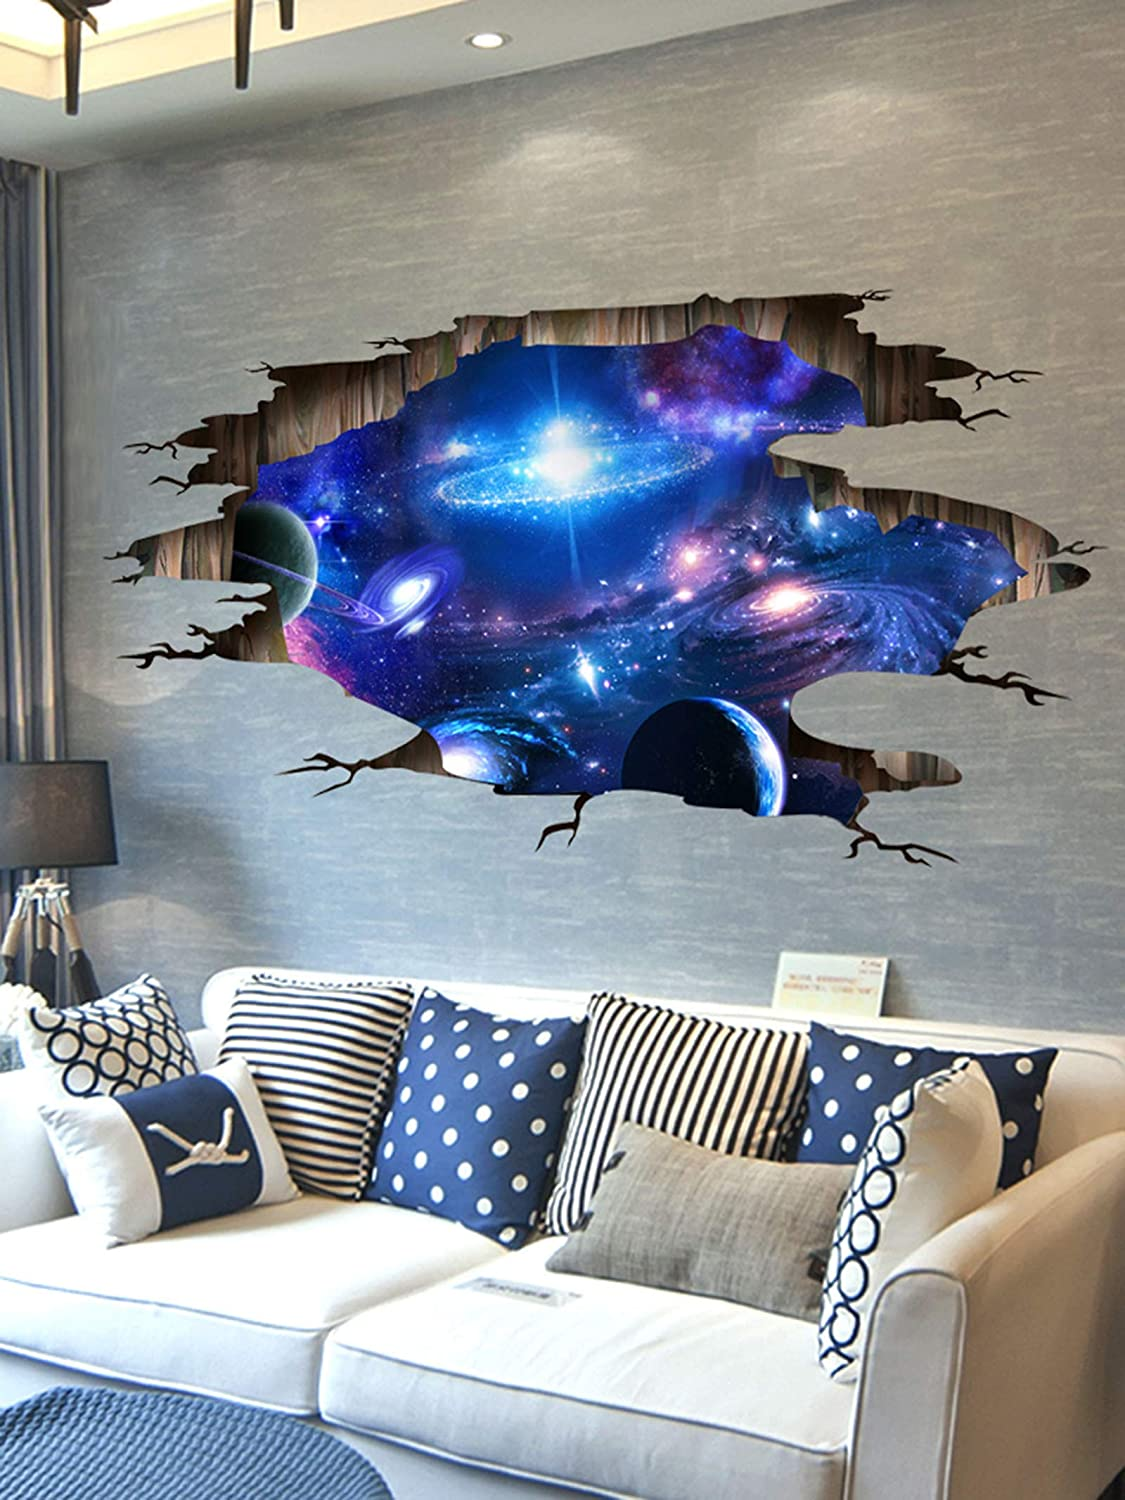 Amazon Com Sengter Outer Space Decor 3d Wallpaper Ceiling Stars Planet Galaxy Decor Wall Mural Waterproof Removable Kids Wall Decals Posters For Boys Room Living Room Wall Decor Sticker Cool Room Decor